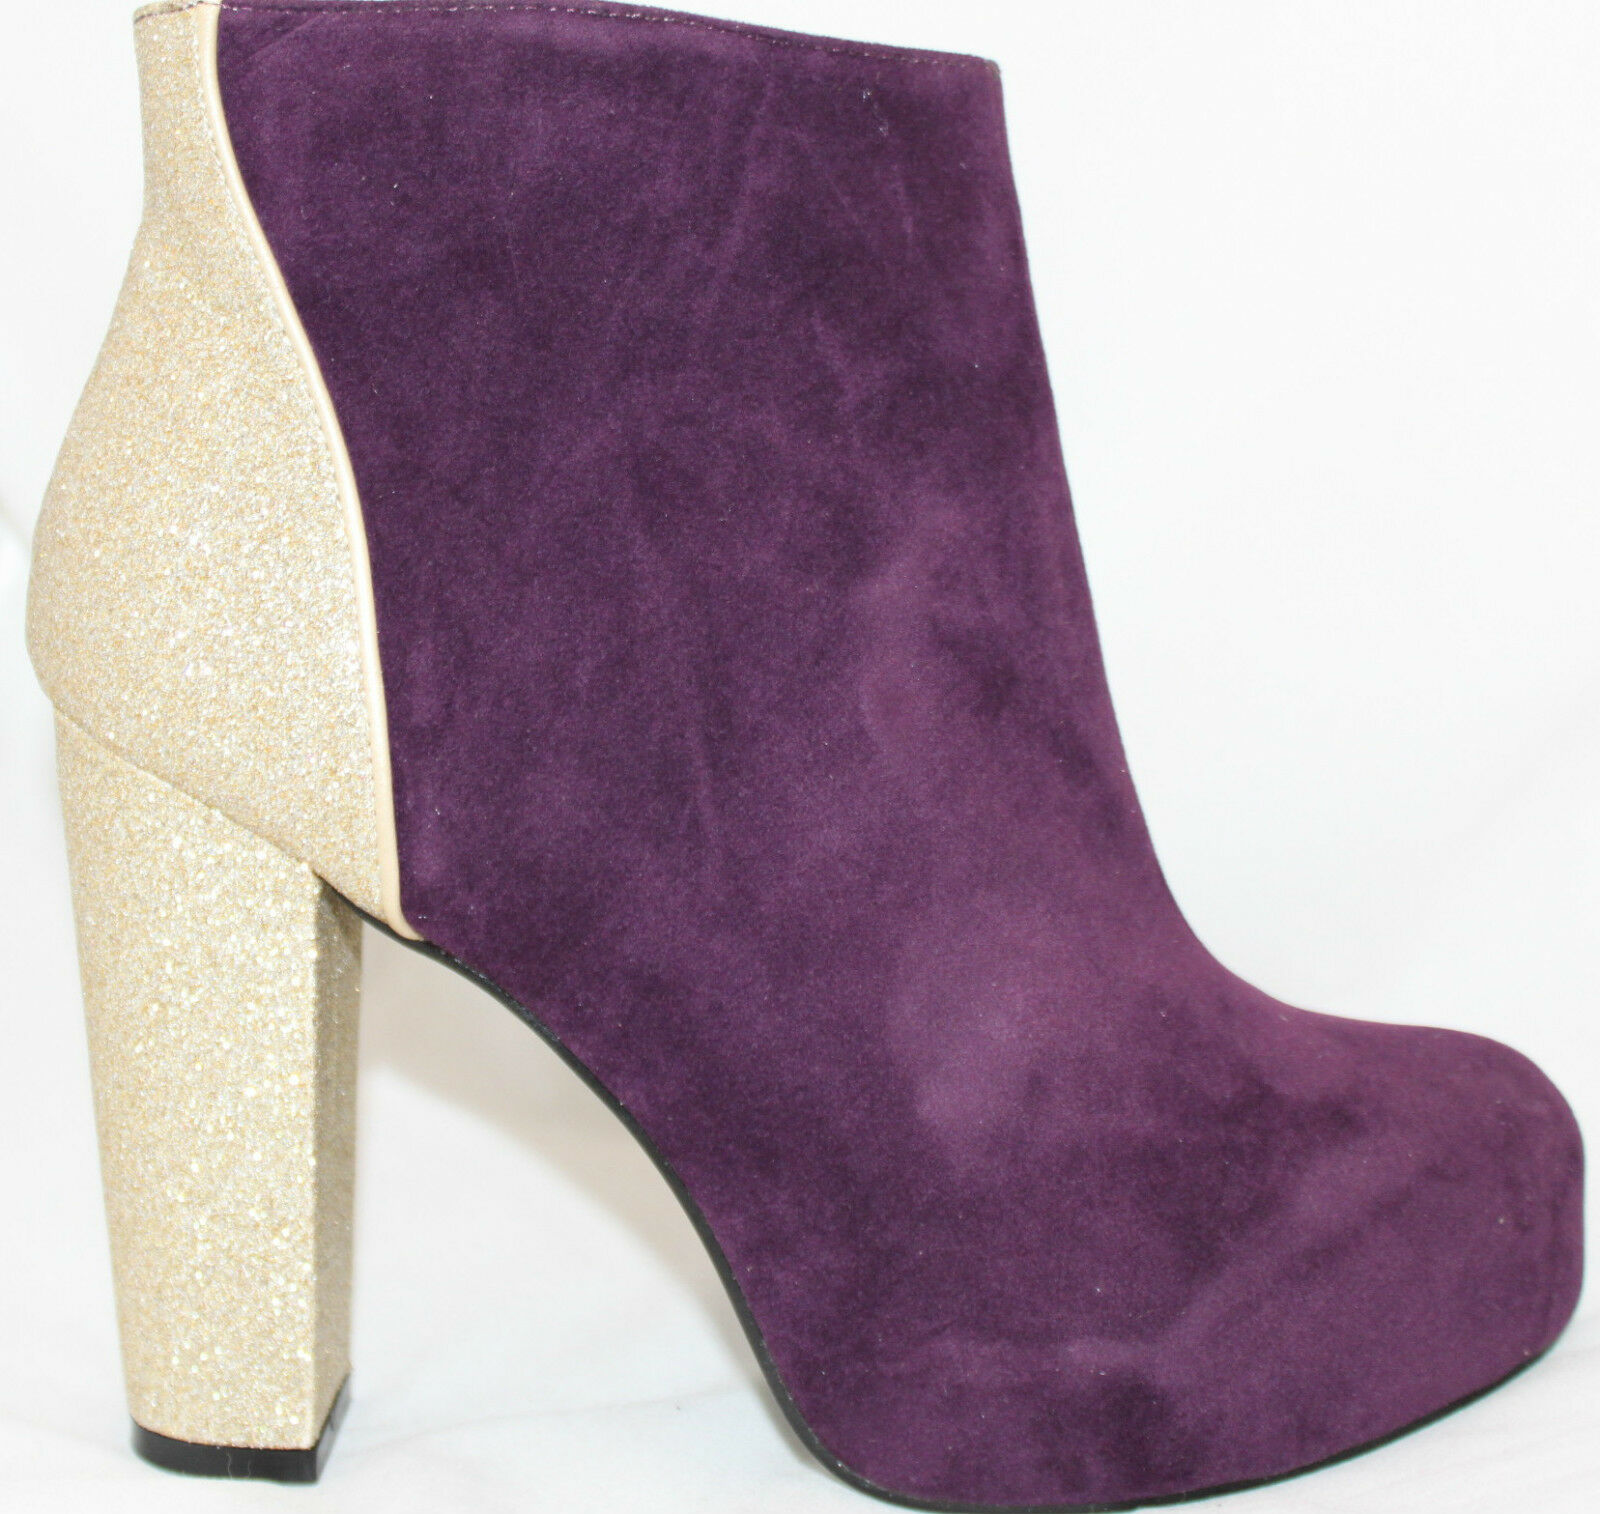 Velvet Boots Boots Boots Fashion Ankle Booties Burgundy w Glittery gold Suede Women's shoes 33d615